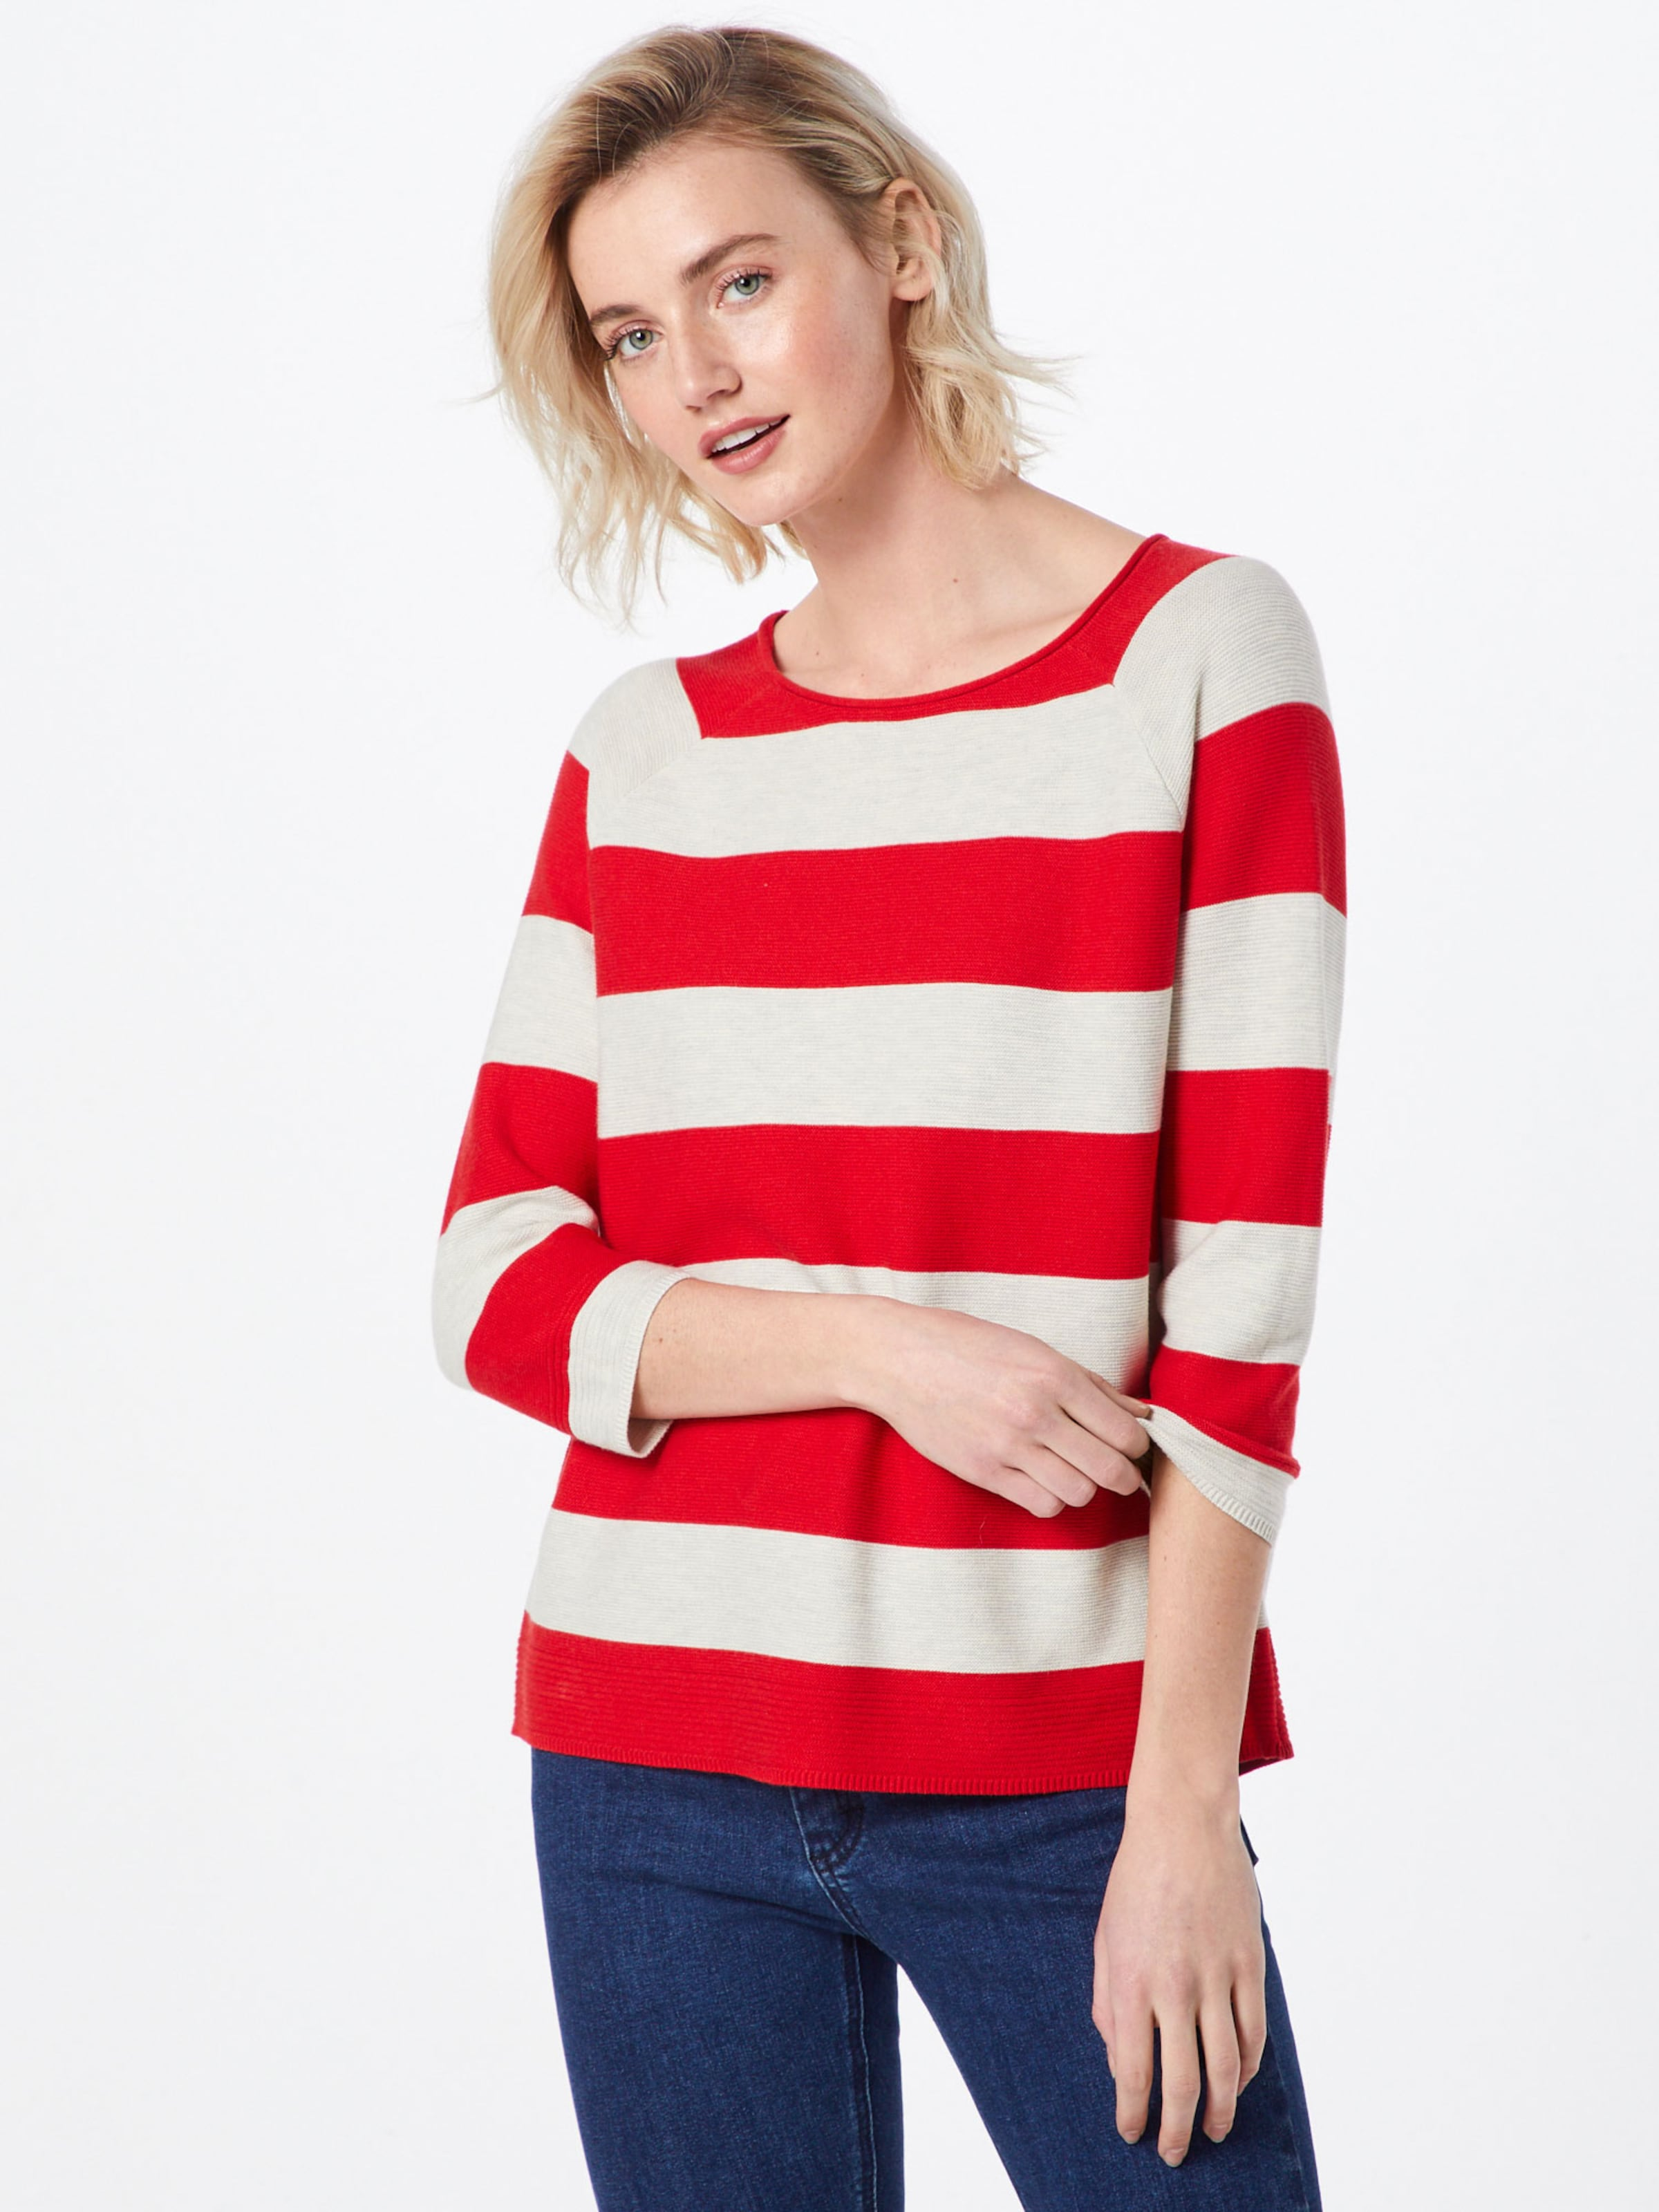 oliver S Label Pullover In Red RotWei Nnm0v8w